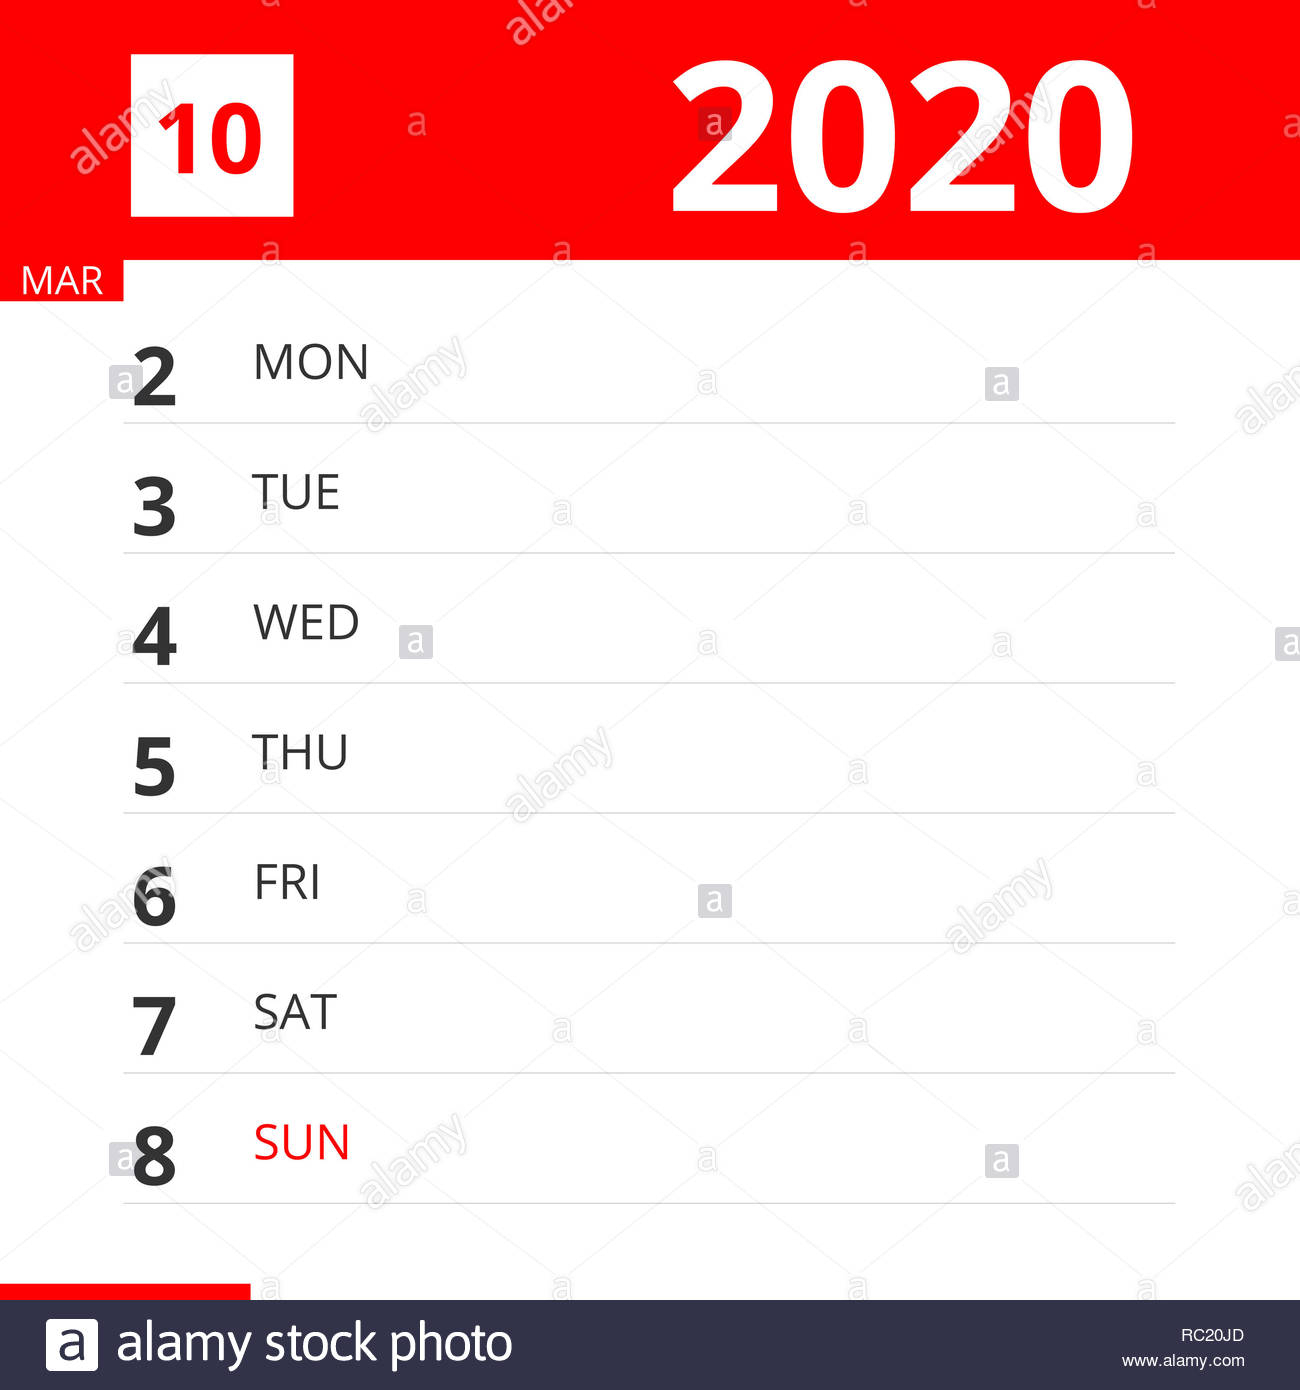 Calendar Planner For Week 10 In 2020, Ends March 8, 2020